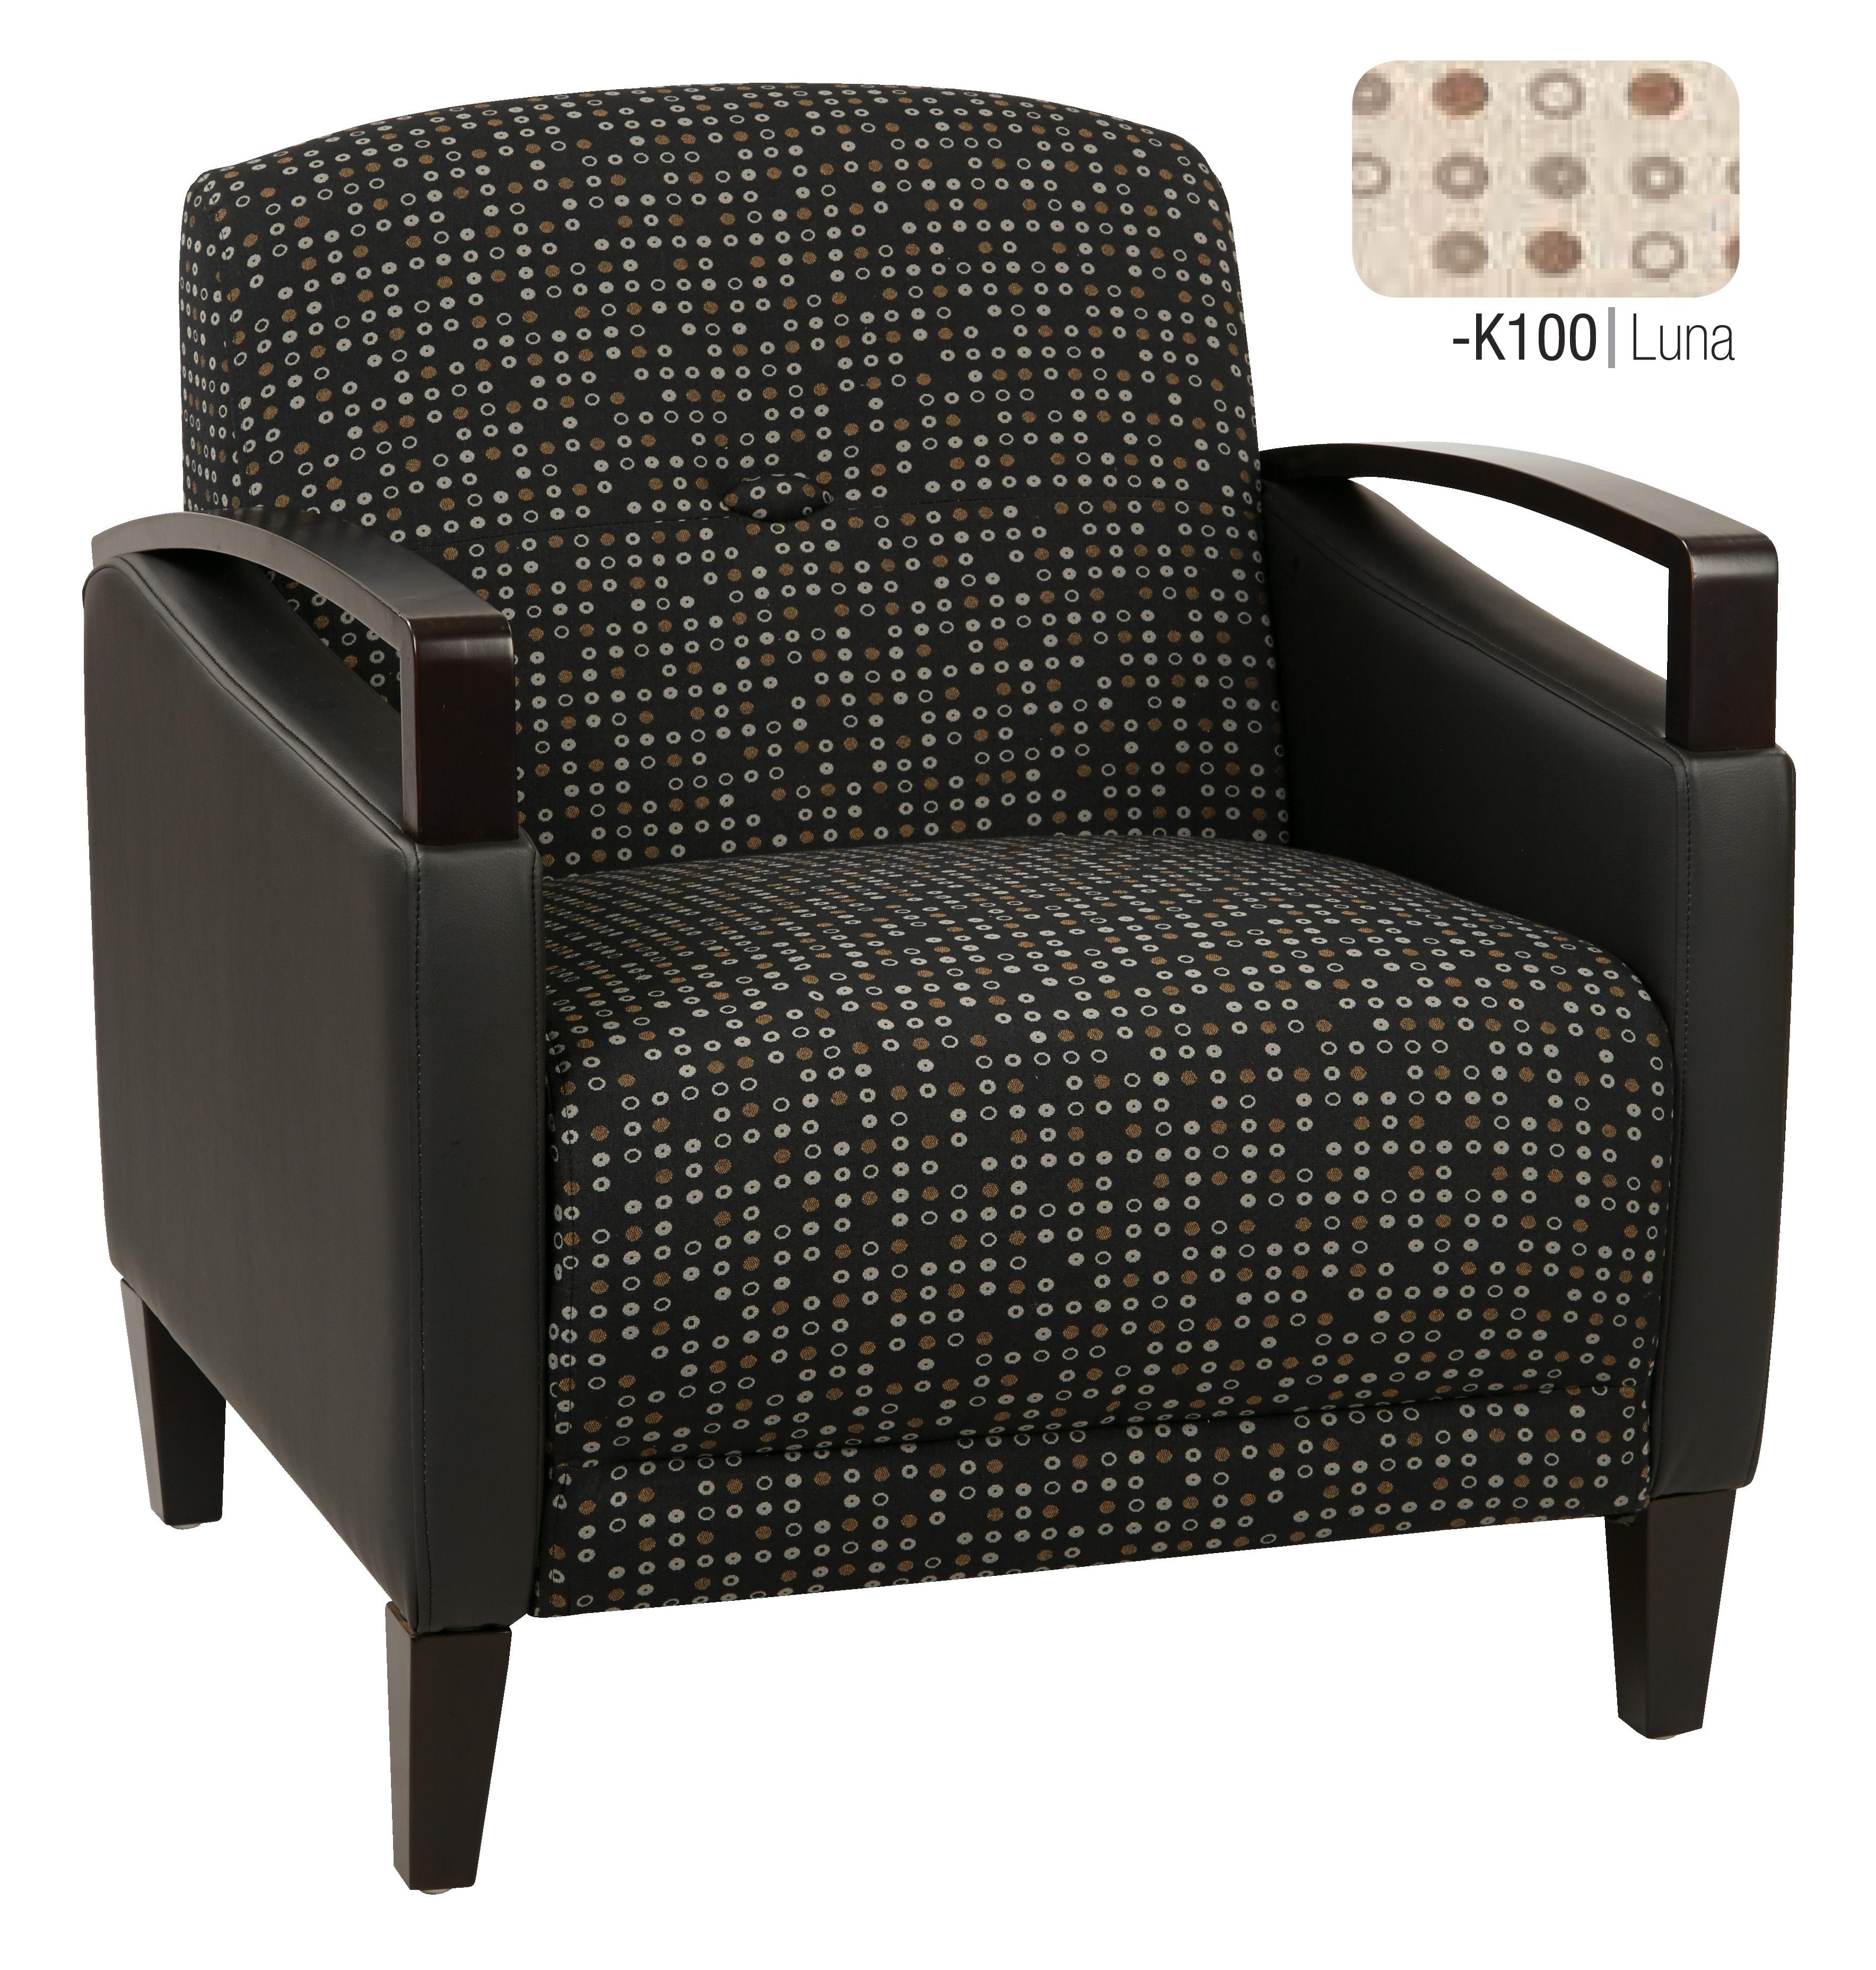 Main Street 2-Tone  Fabric Chair-Color:Luna & Stratus